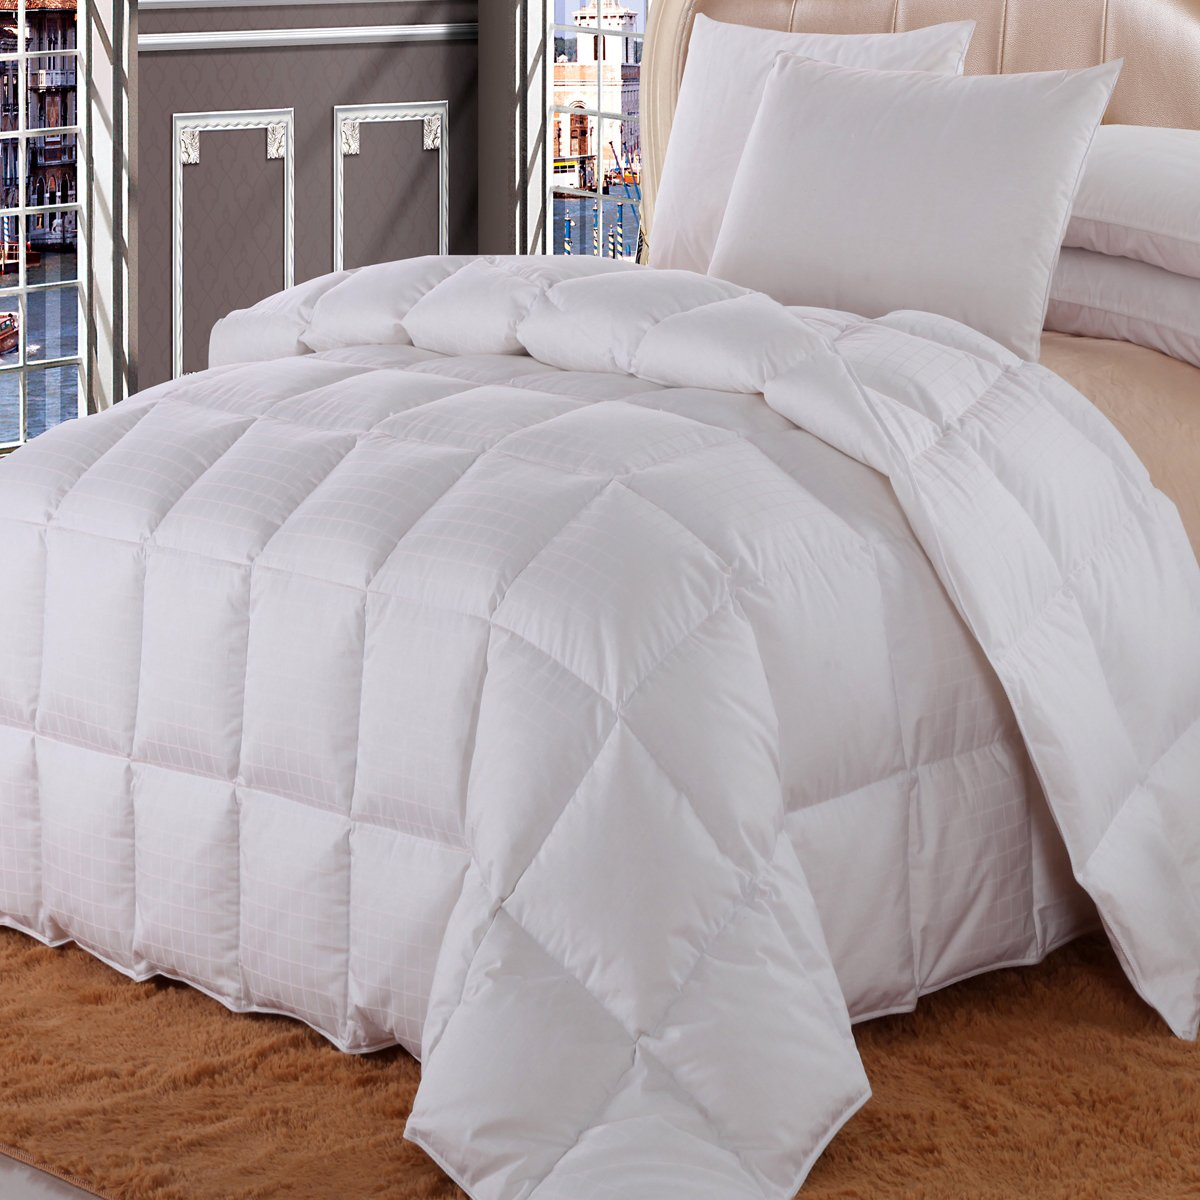 Royal Hotel California King Size Dobby Checkered White goose Down-Comforter 106x90'' 650-Fill-Power 100 % Cotton Shell 300TC -Luxury Duvet Insert 40 oz. fill by Wholesalebeddings